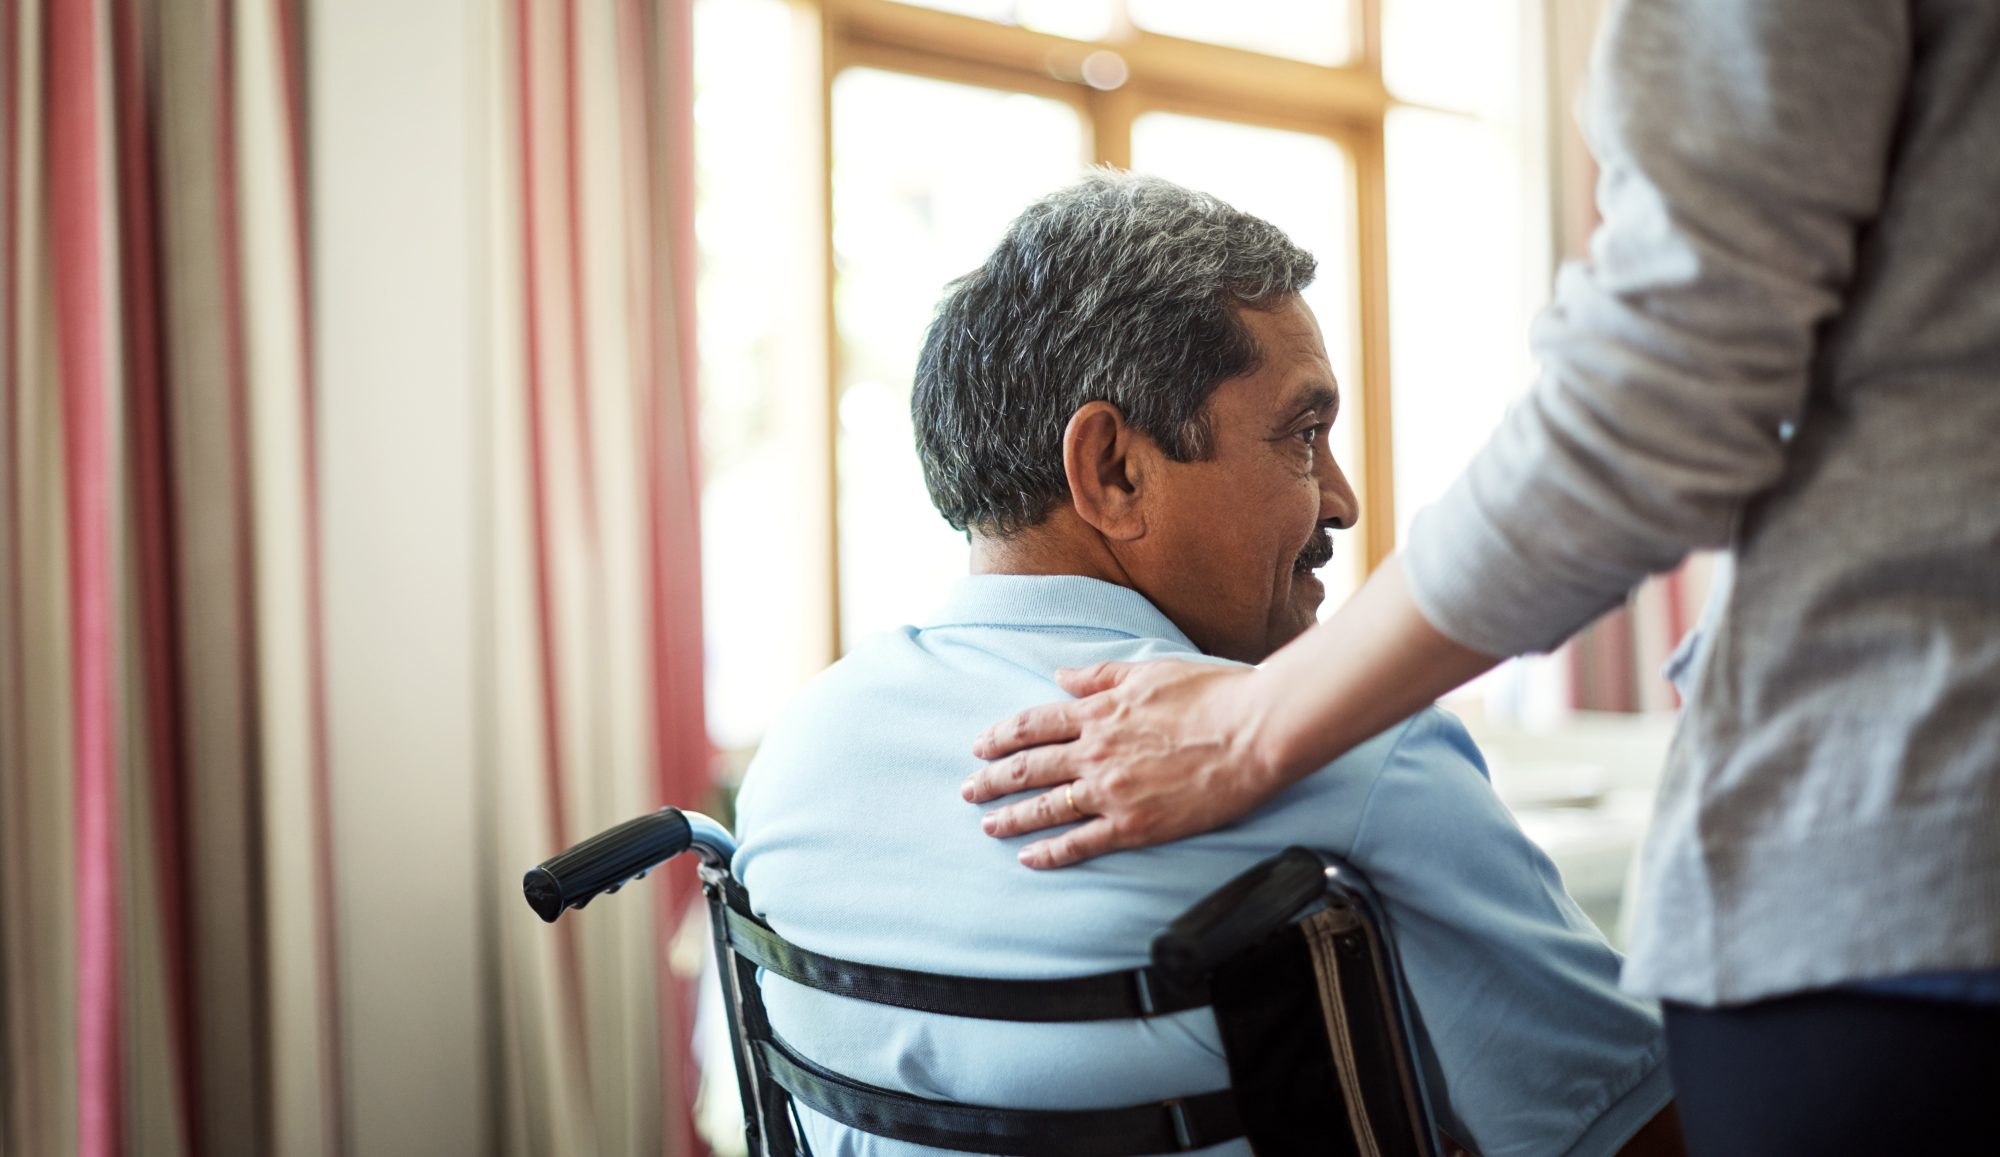 Nurse caring for a senior man in a retirement home